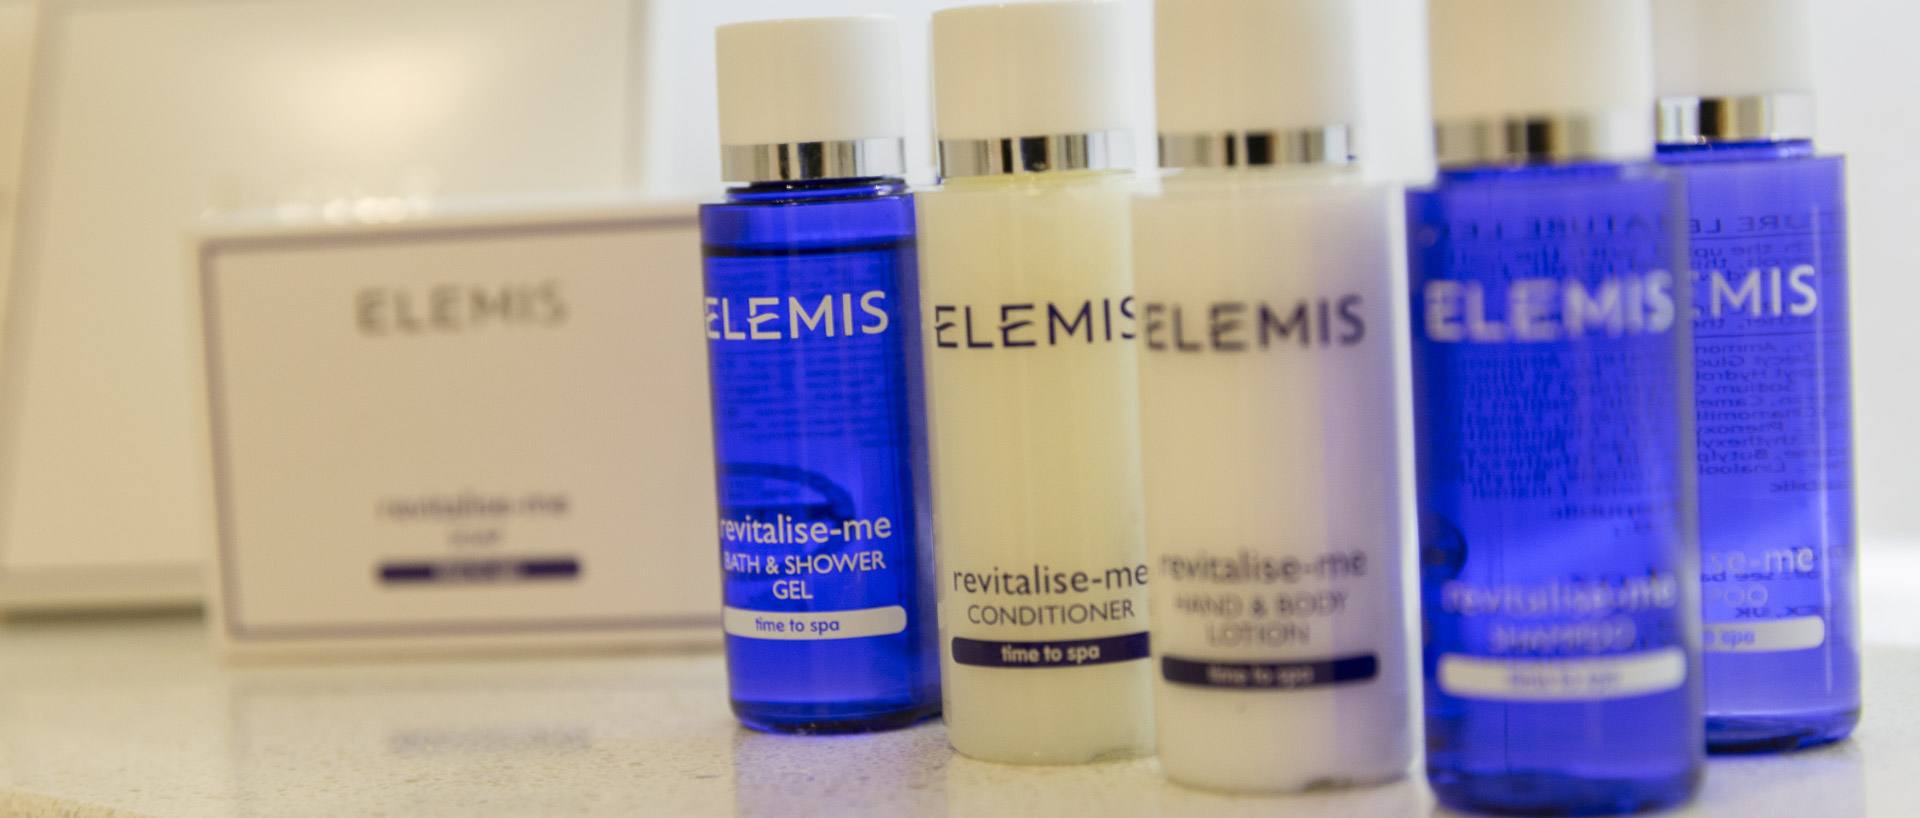 Elemis guest toiletries PREMIER SUITES PLUS Rotterdam